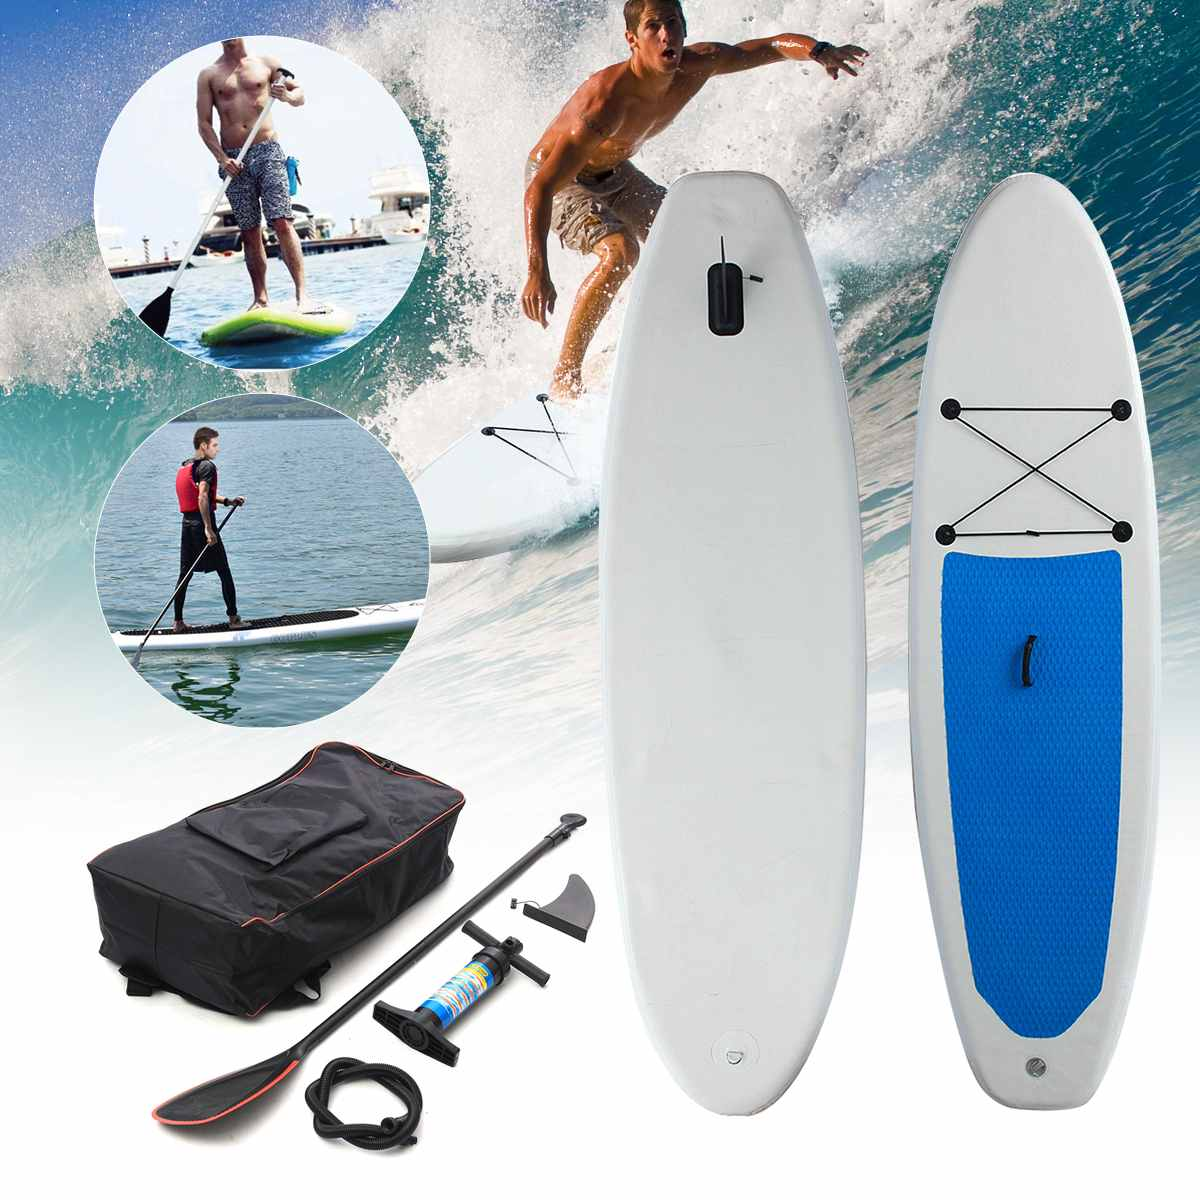 US $349 11 Gofun 310*68 5*10cm Stand Up Paddle Surfboard